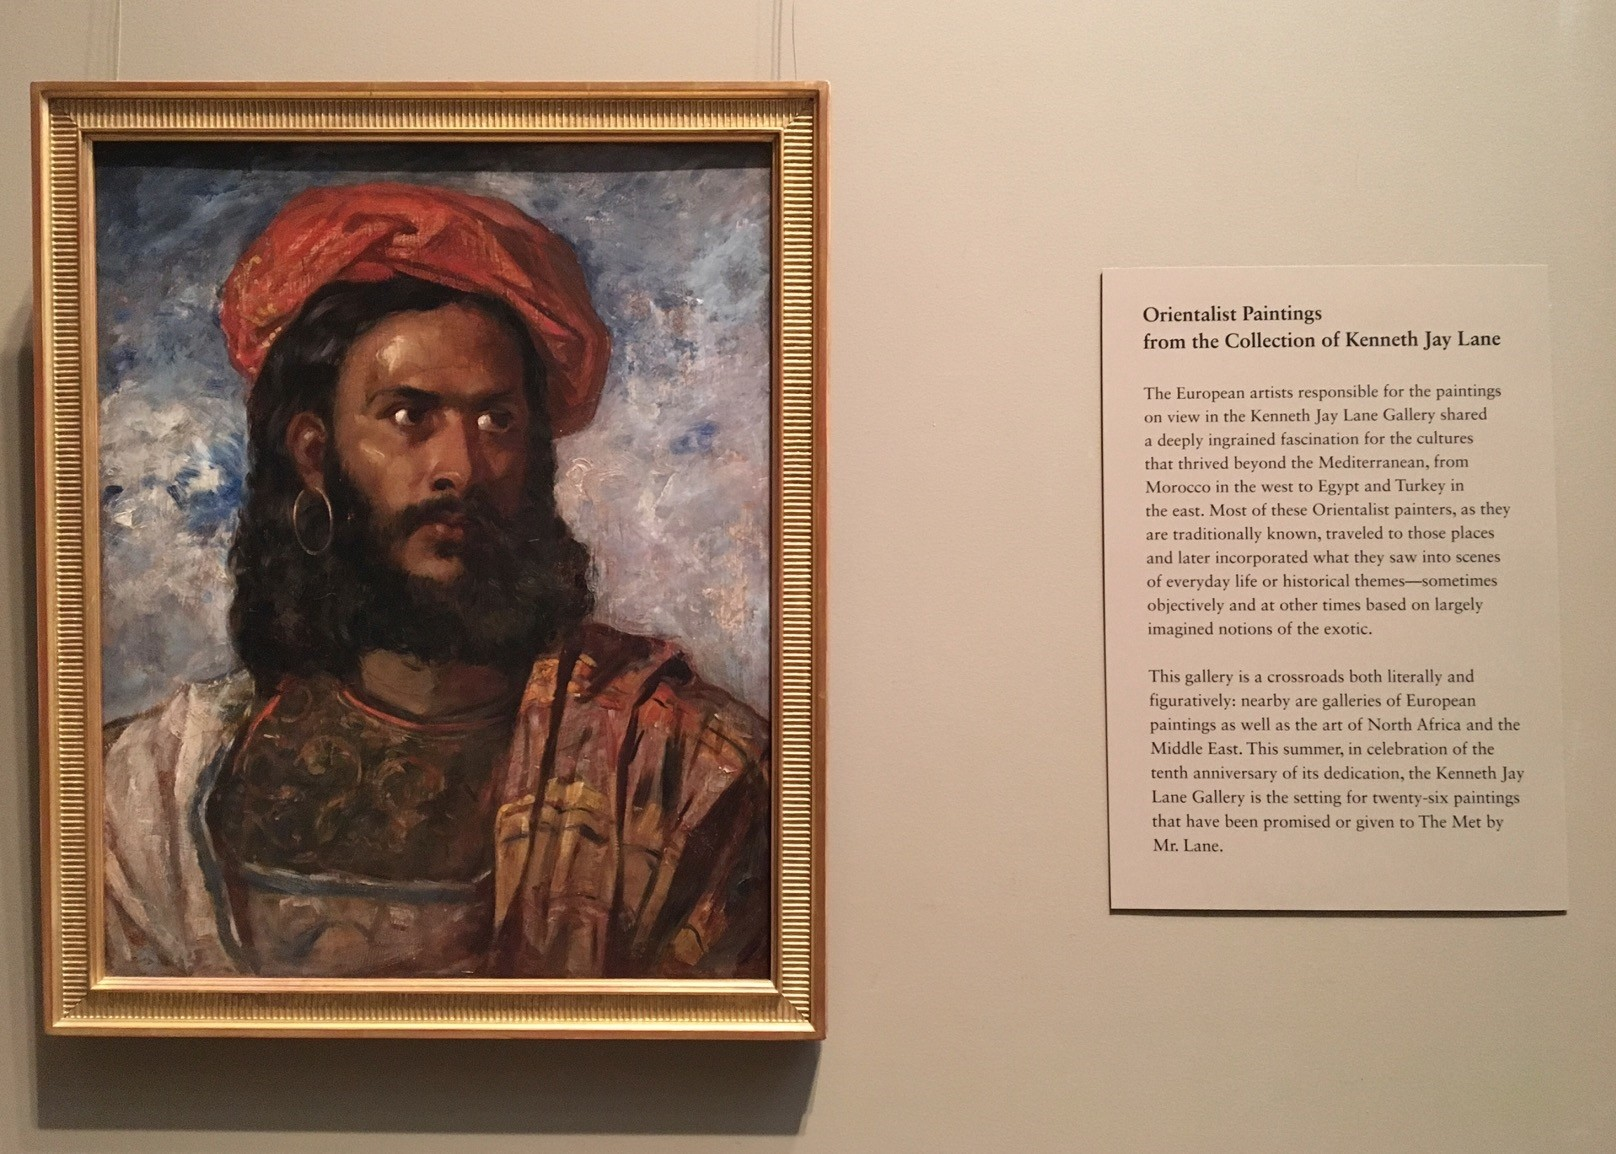 The 26 artworks from the Orientalist Paintings from the collection of Kenneth Jay Lane tell the history of the Metu2019s earliest acquisitions.